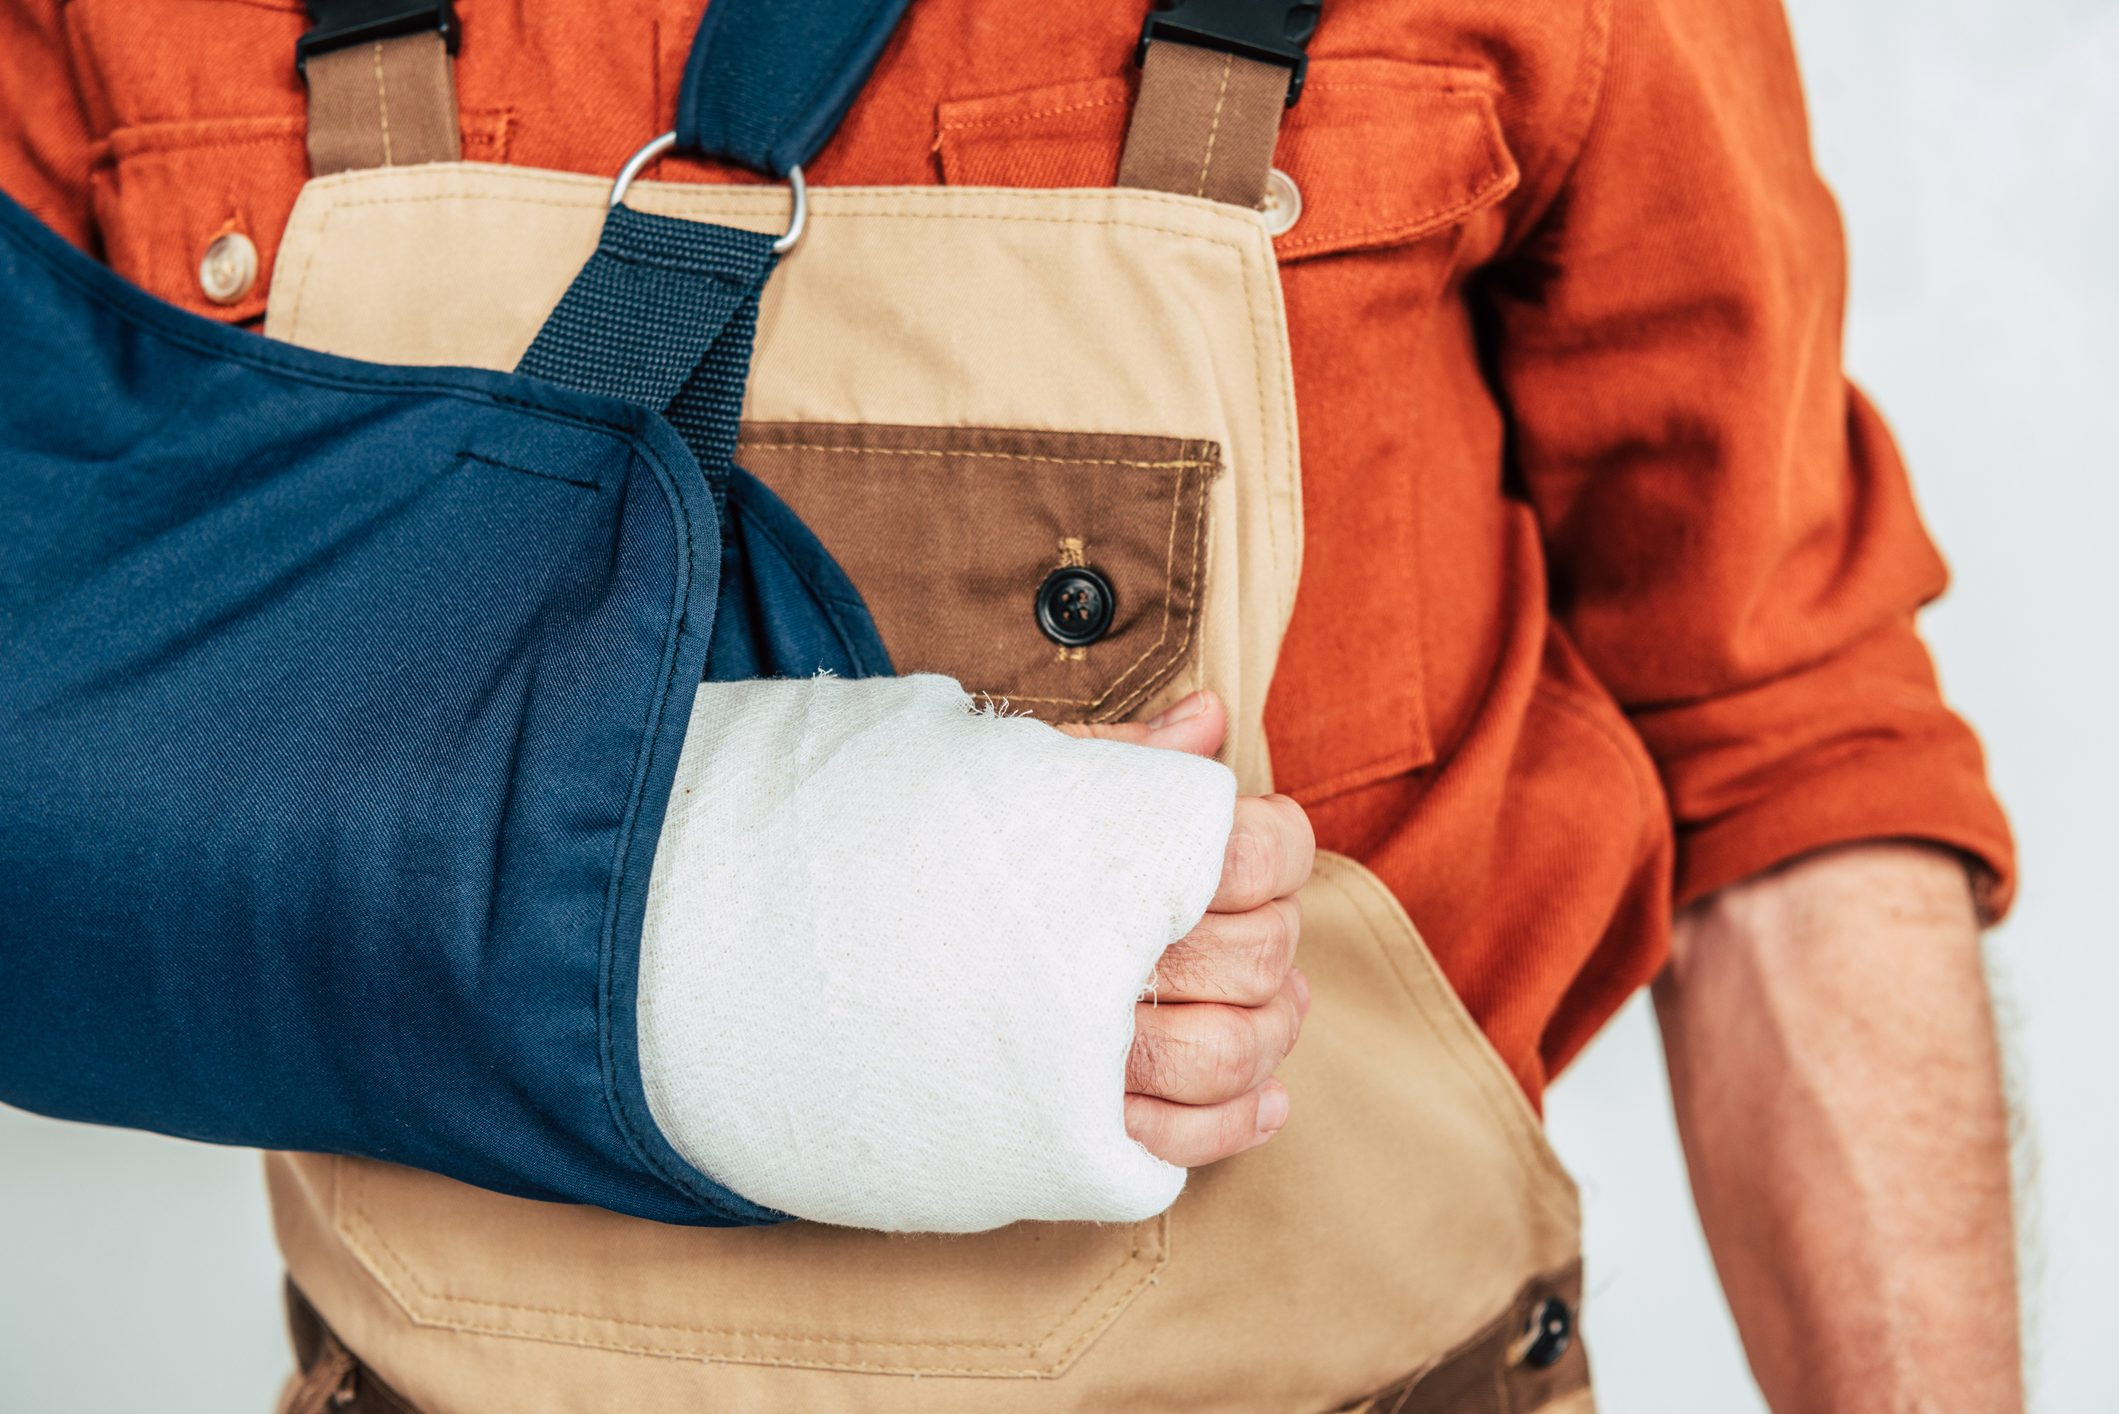 A person with a broken arm after a personal injury in Clifton, NJ.